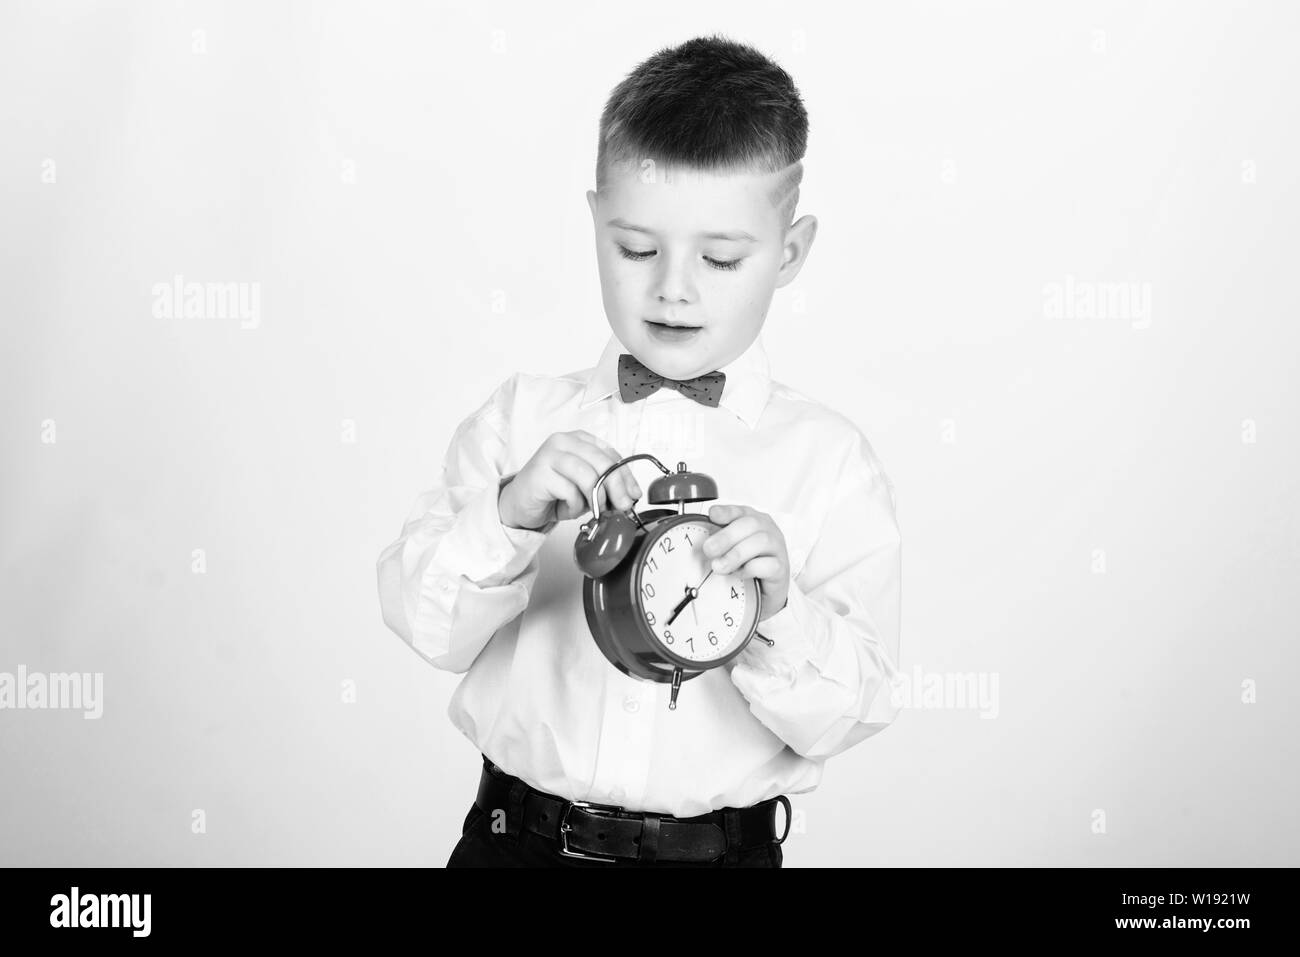 Time management. Morning. little boy with alarm clock. Time to relax. happy child with retro clock in bow tie. tuxedo kid. Happy childhood. Party time. Businessman. Formal wear. Starting day. - Stock Image